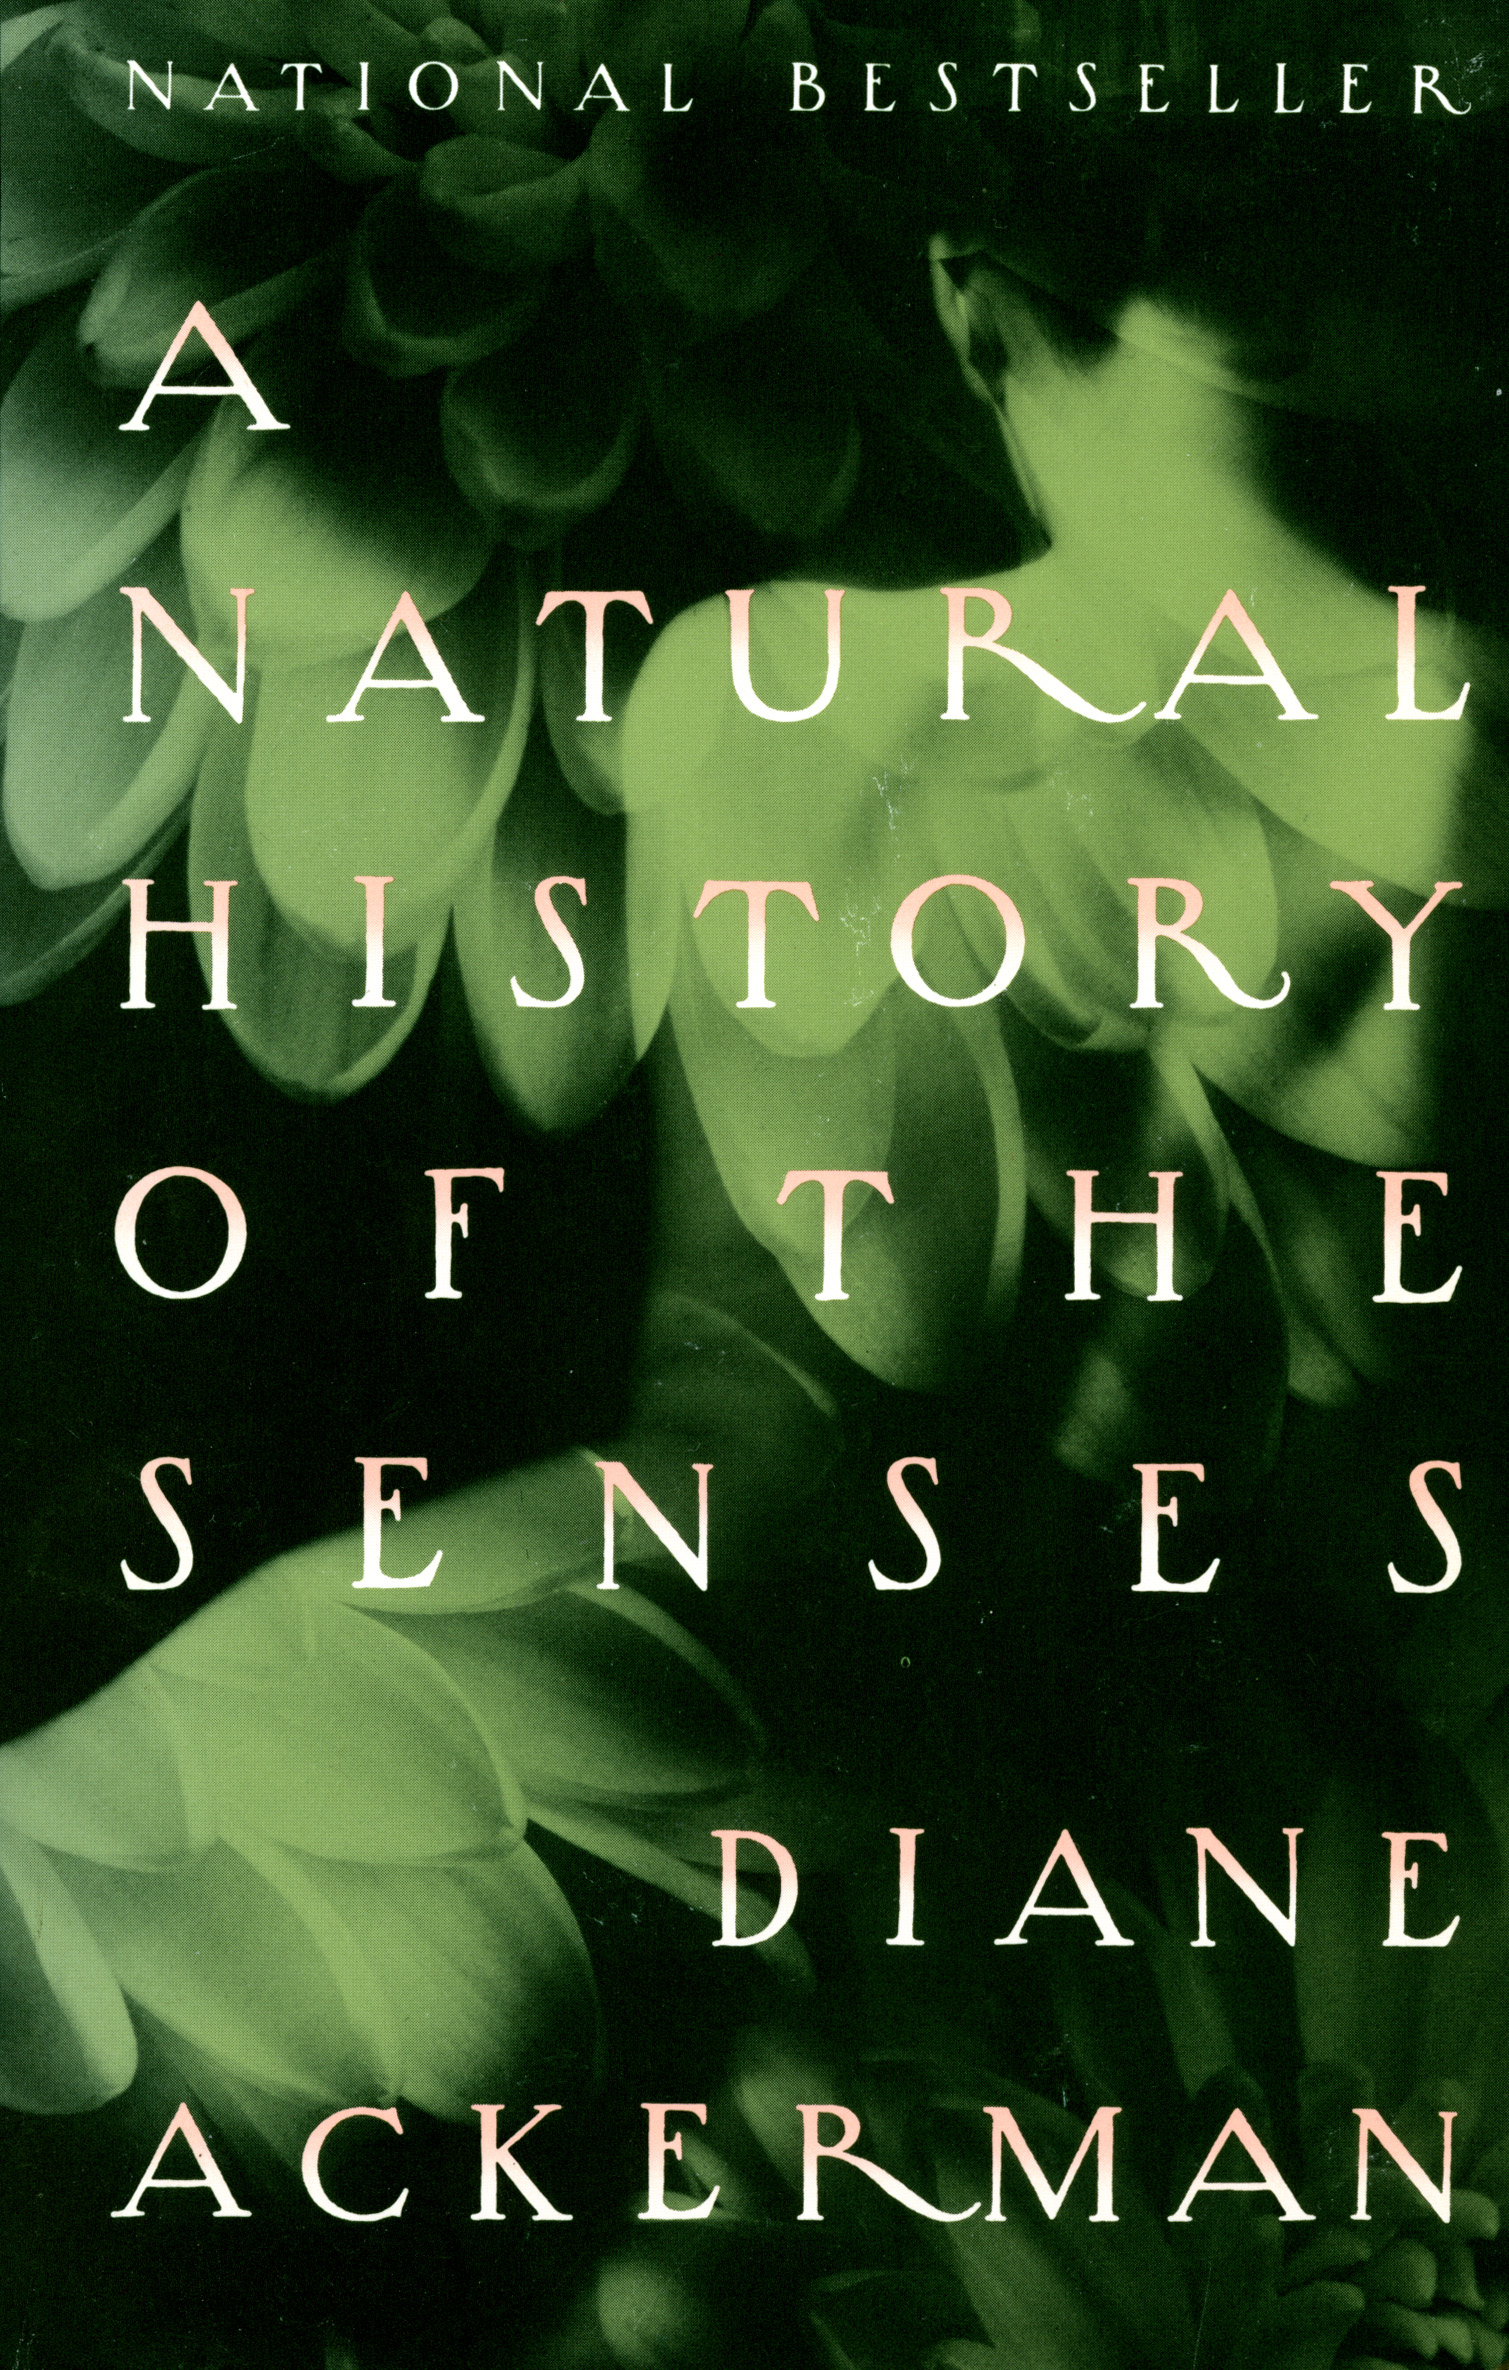 A Natural History of the Senses by Diane Ackerman